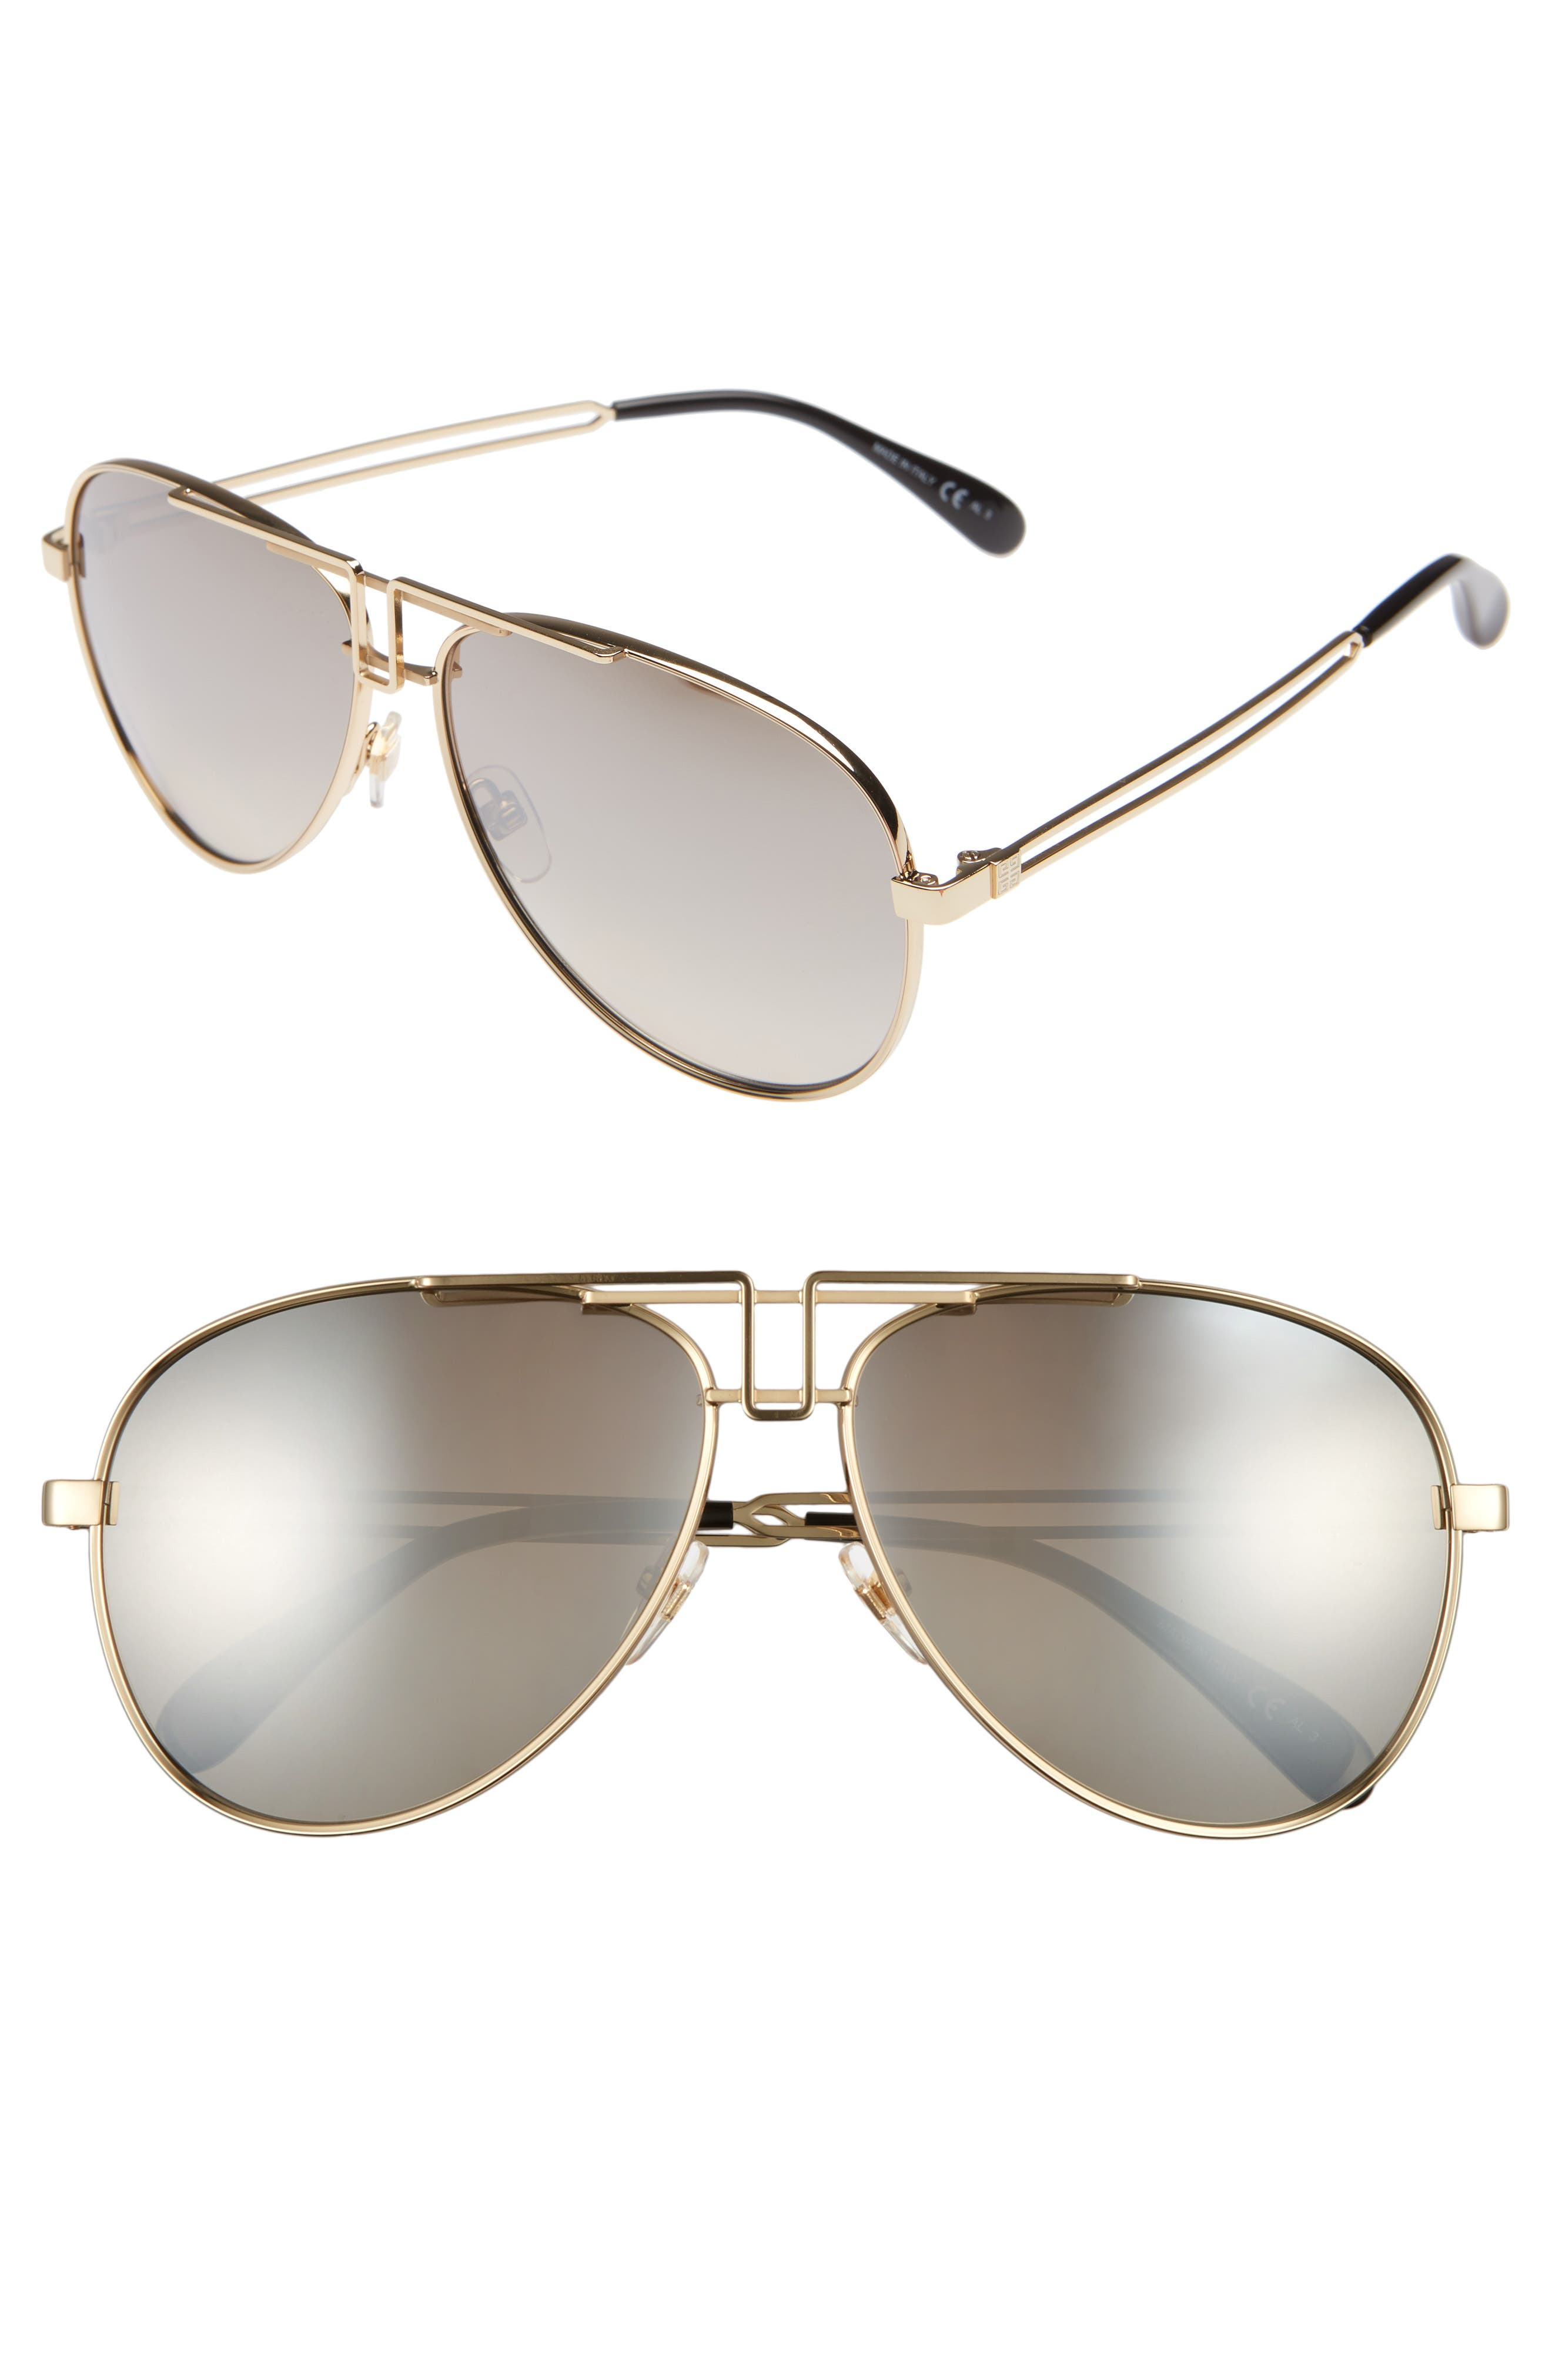 Givenchy 61Mm Aviator Sunglasses - Gold